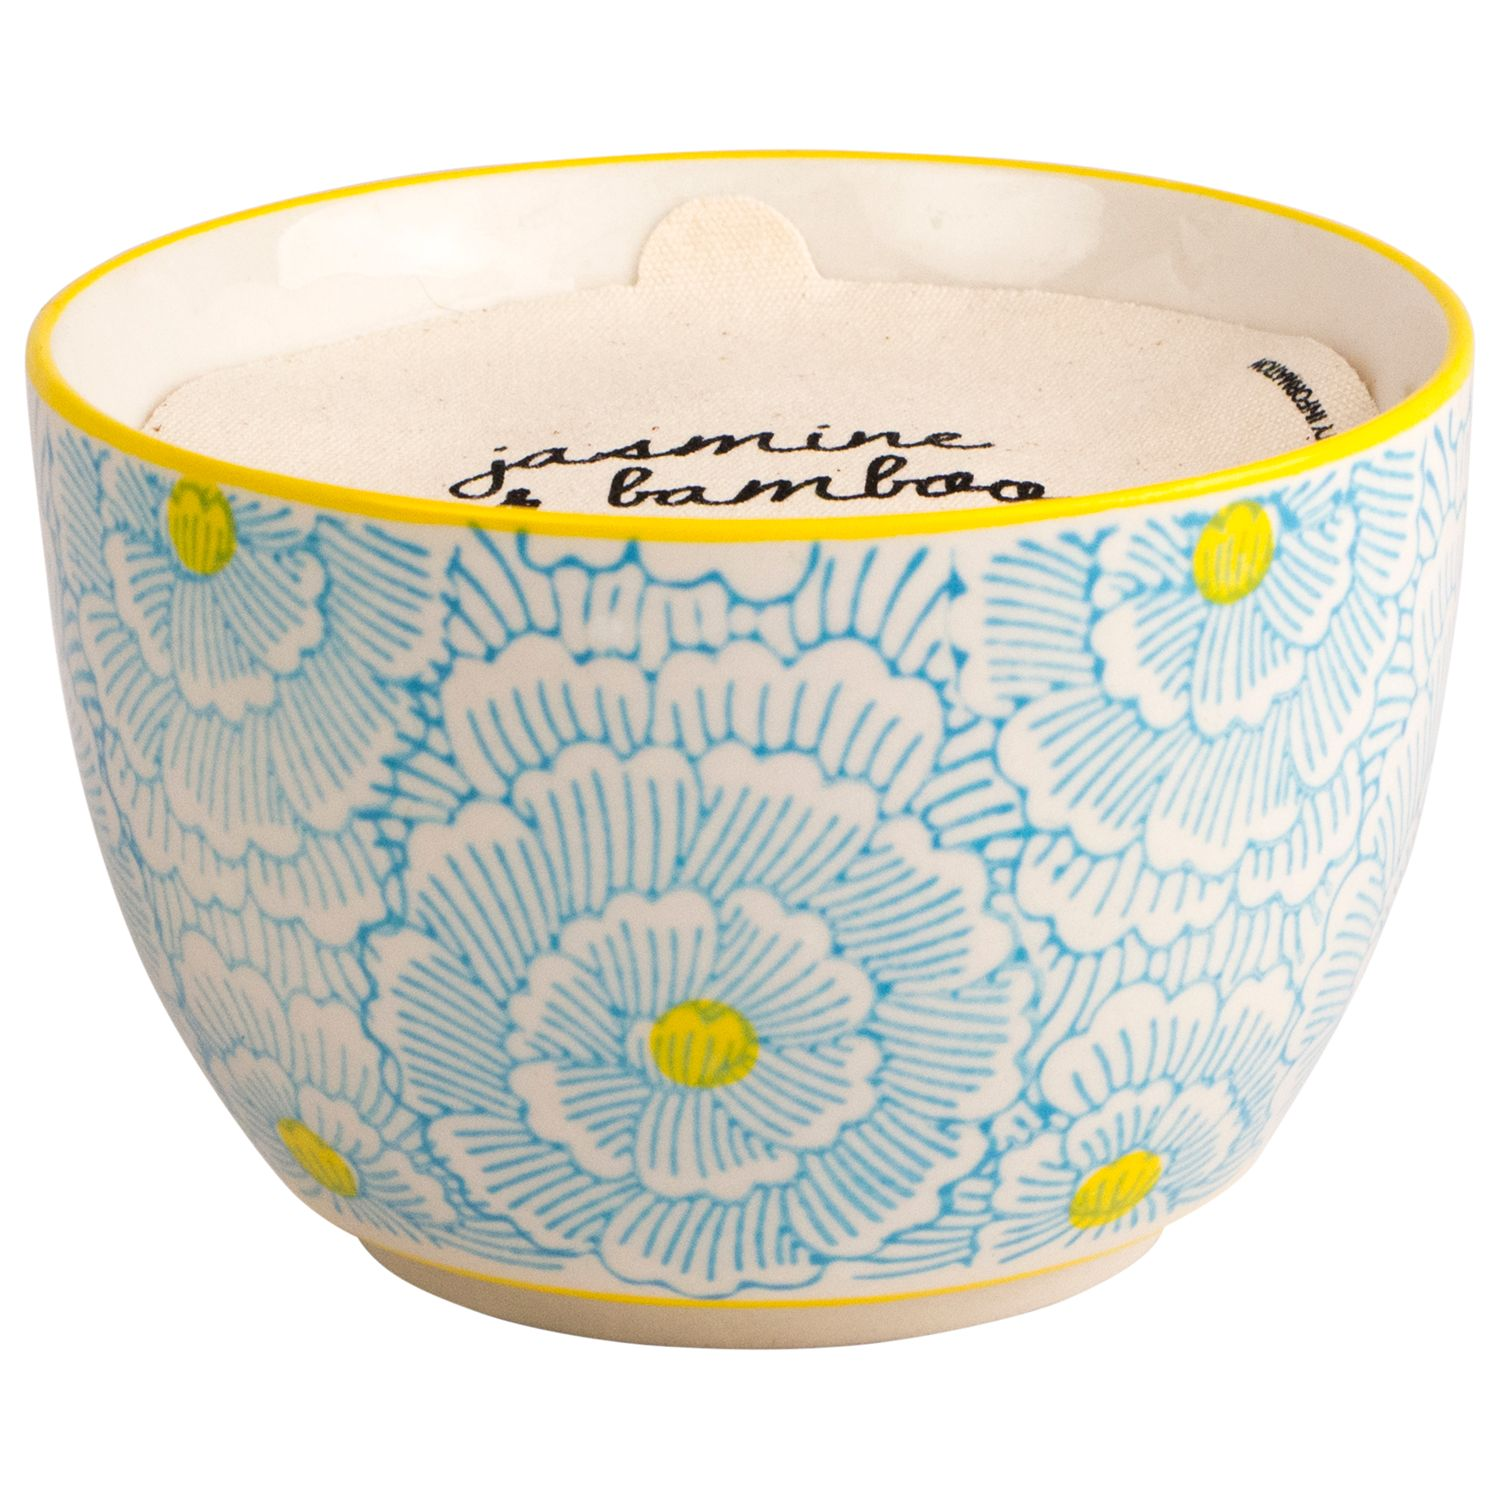 Paddywax Paddywax Boheme Large Jasmine and Bamboo Scented Candle